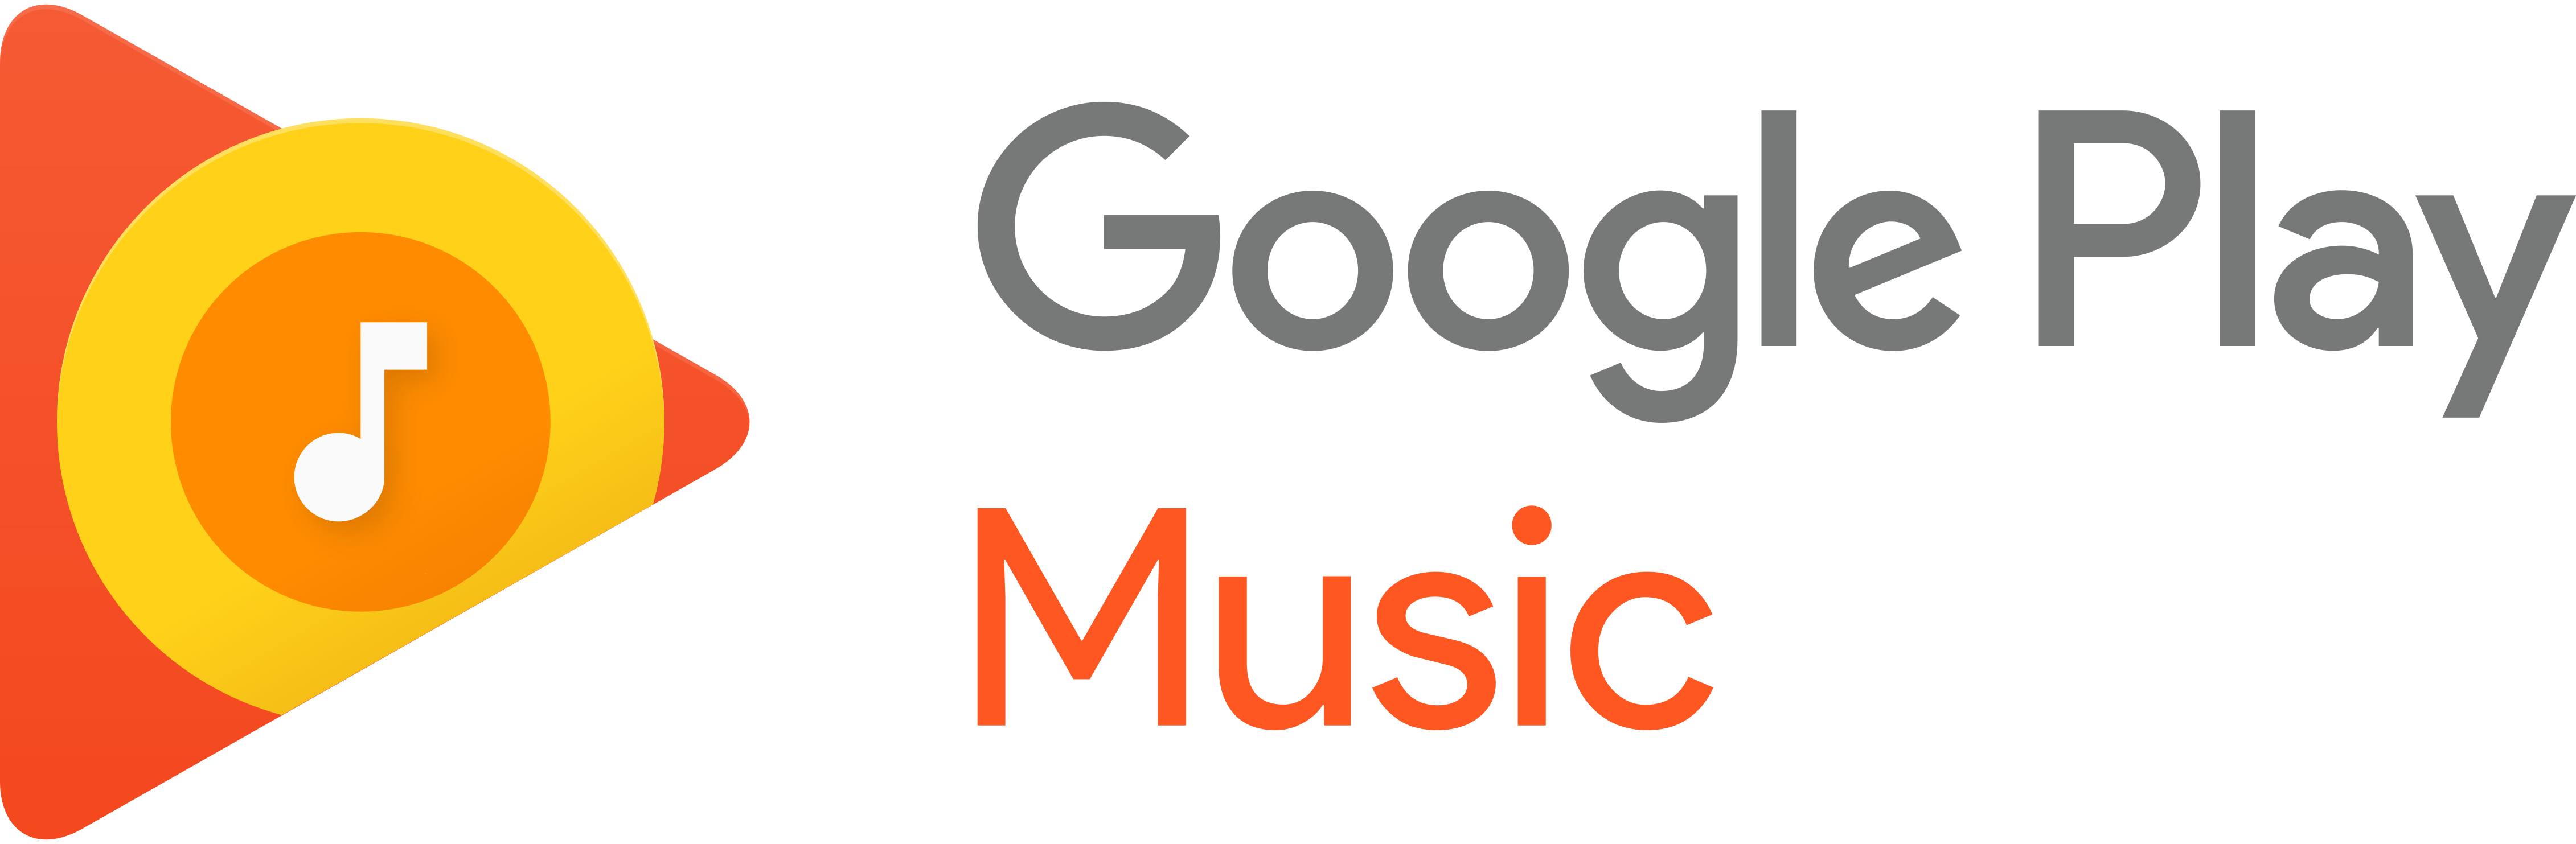 Google play music logo png. Review me